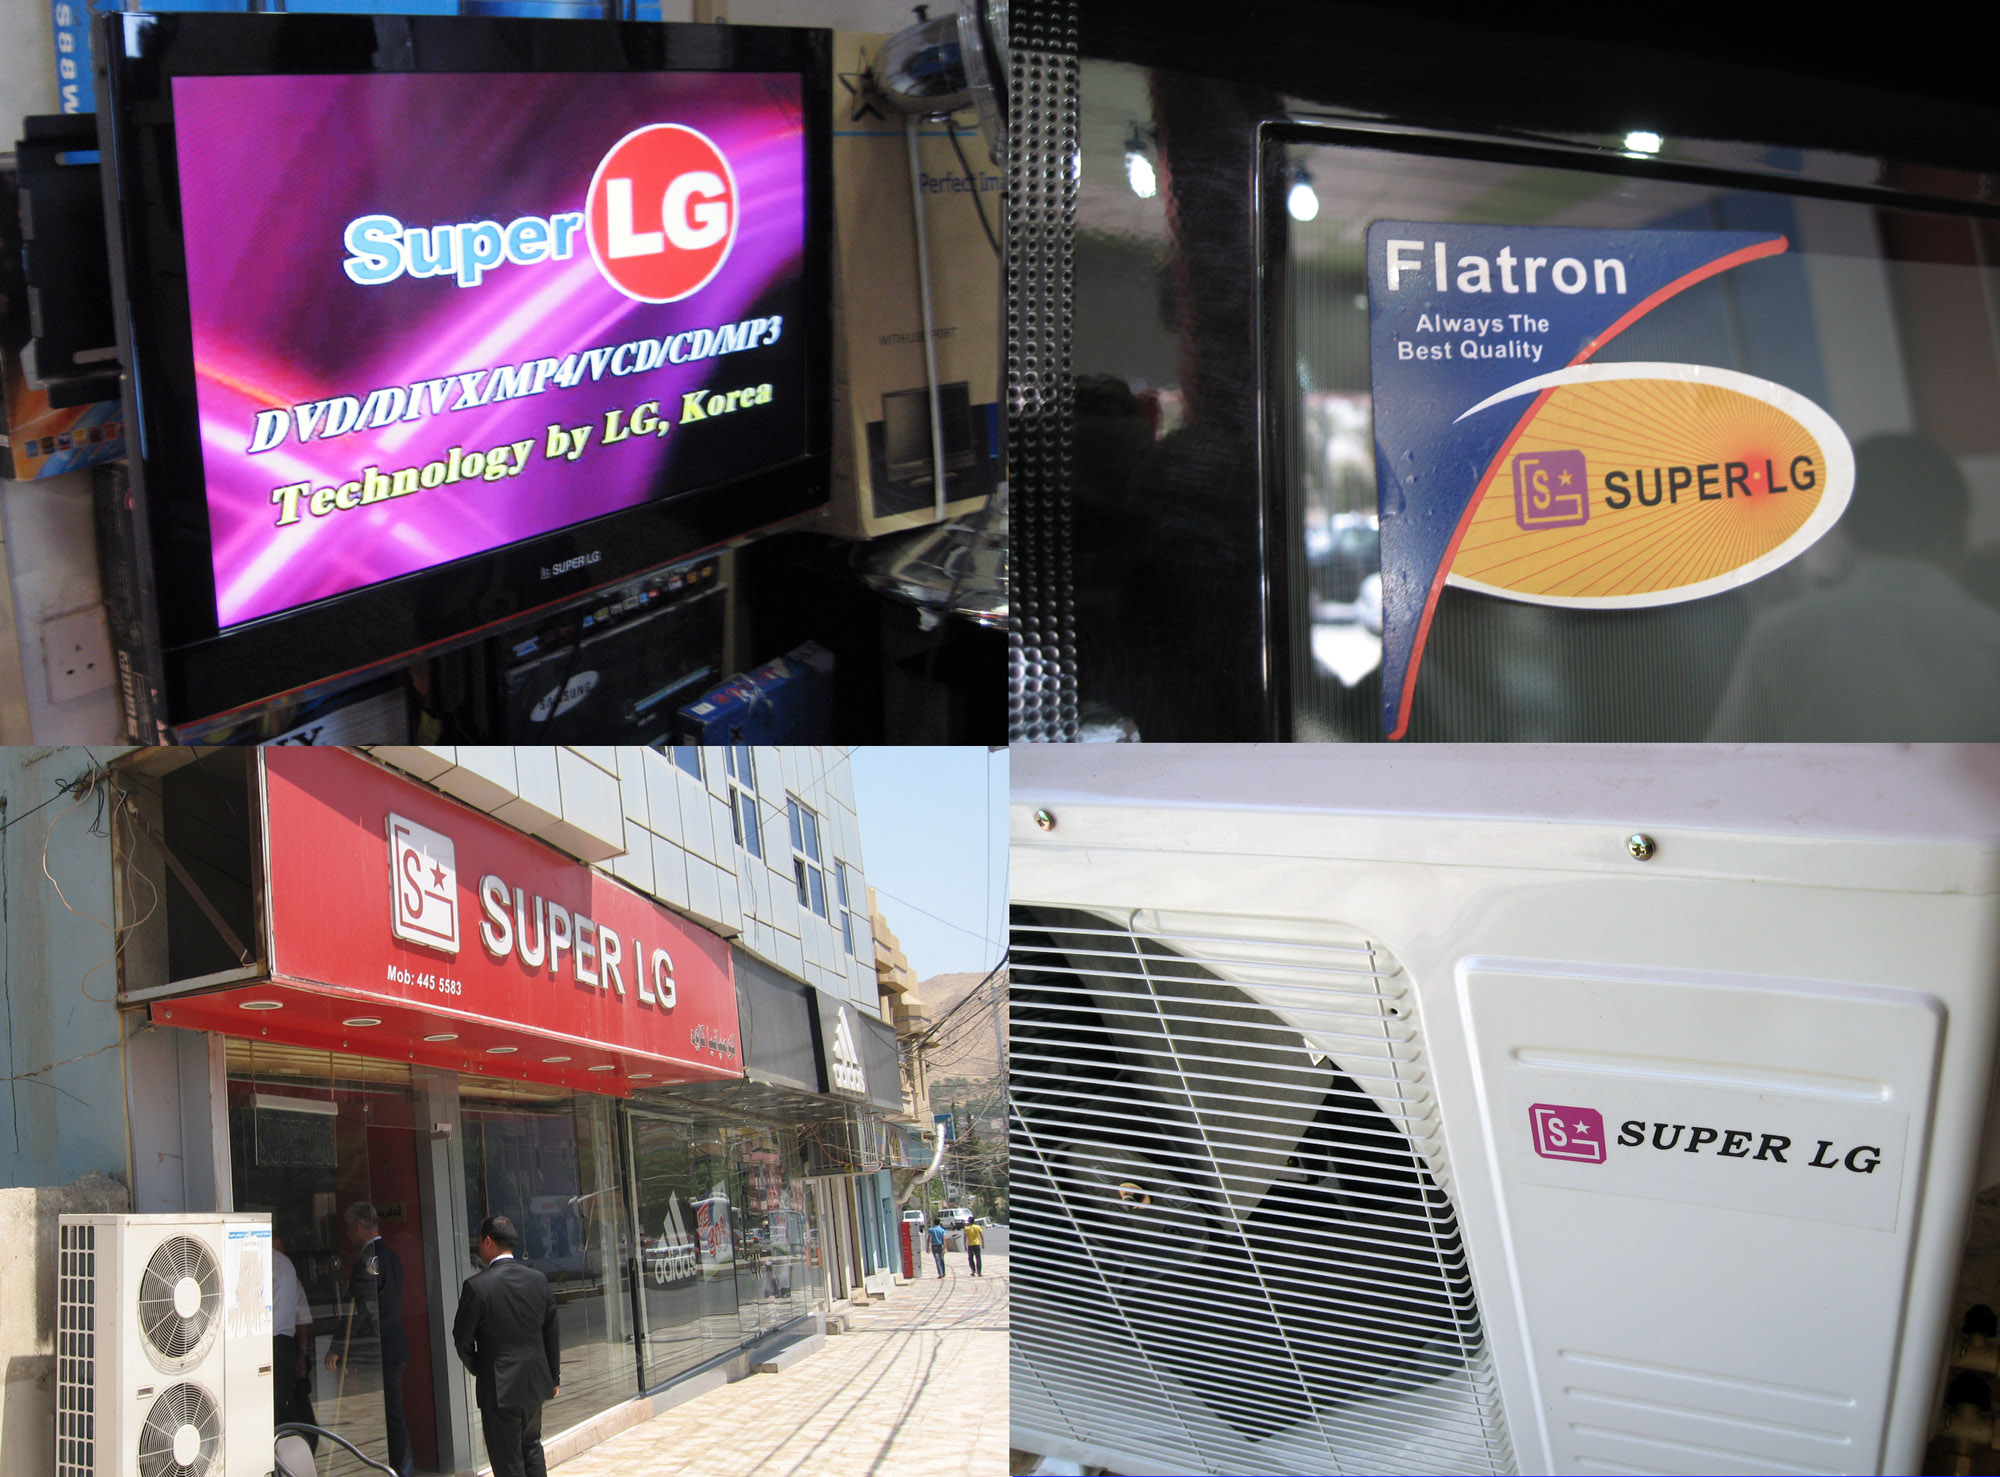 ounterfeitbrandandproducts,suchastelevisions,monitors,airconditioners,etc.